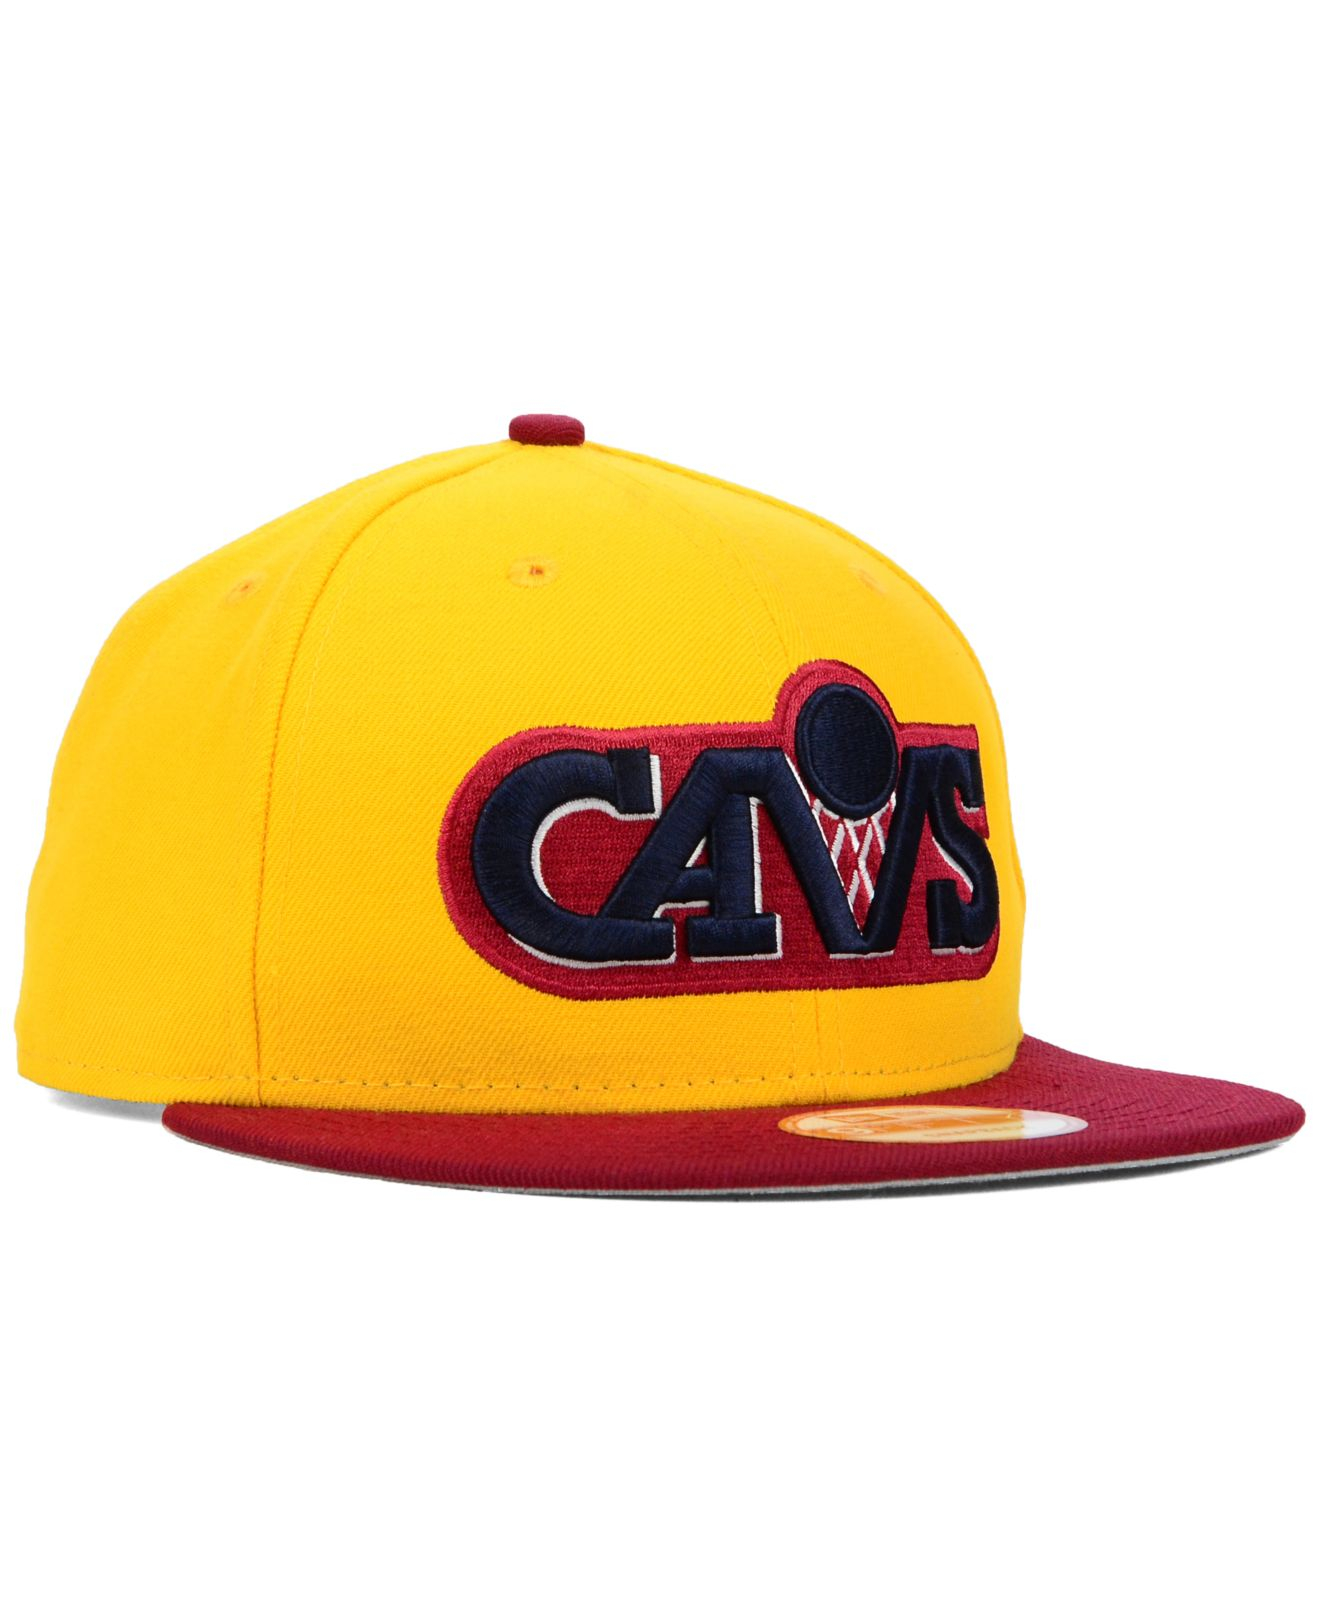 half off b16a3 037e5 KTZ Cleveland Cavaliers Hwc The Land 9fifty Snapback Cap in Yellow ...